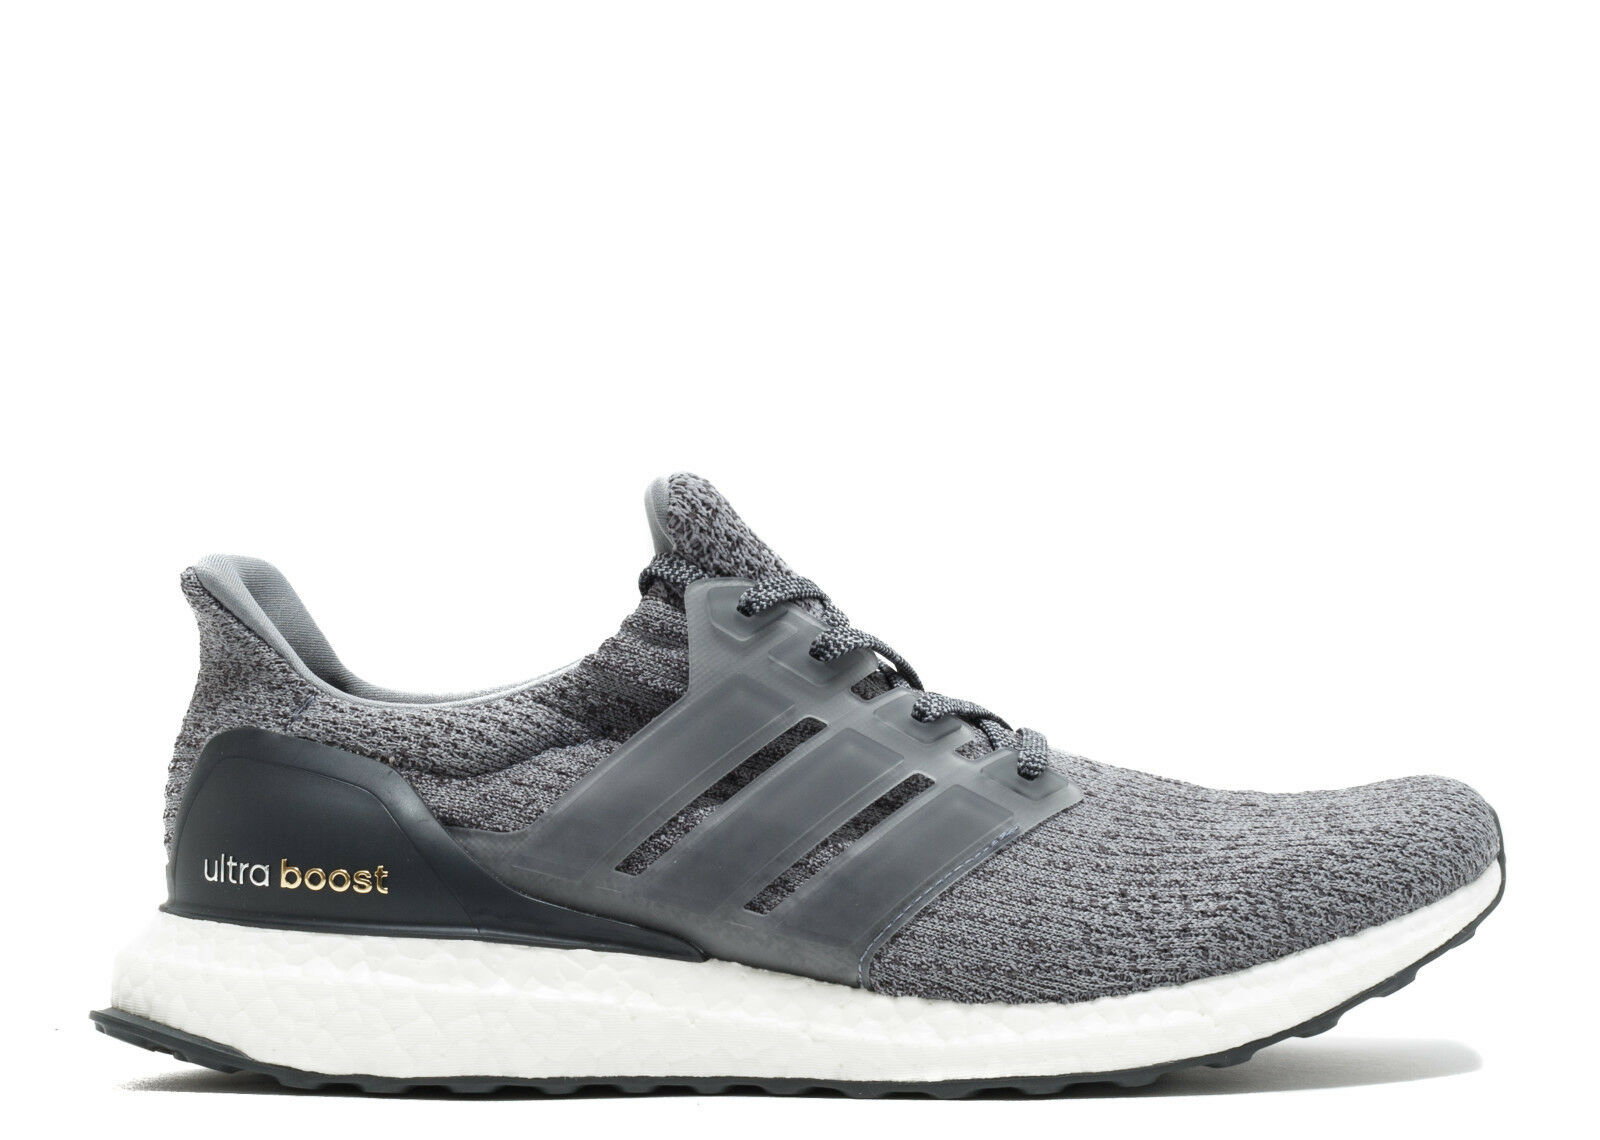 NEW Adidas Ultra Boost BA8849 Men's Running shoes - Solid Grey